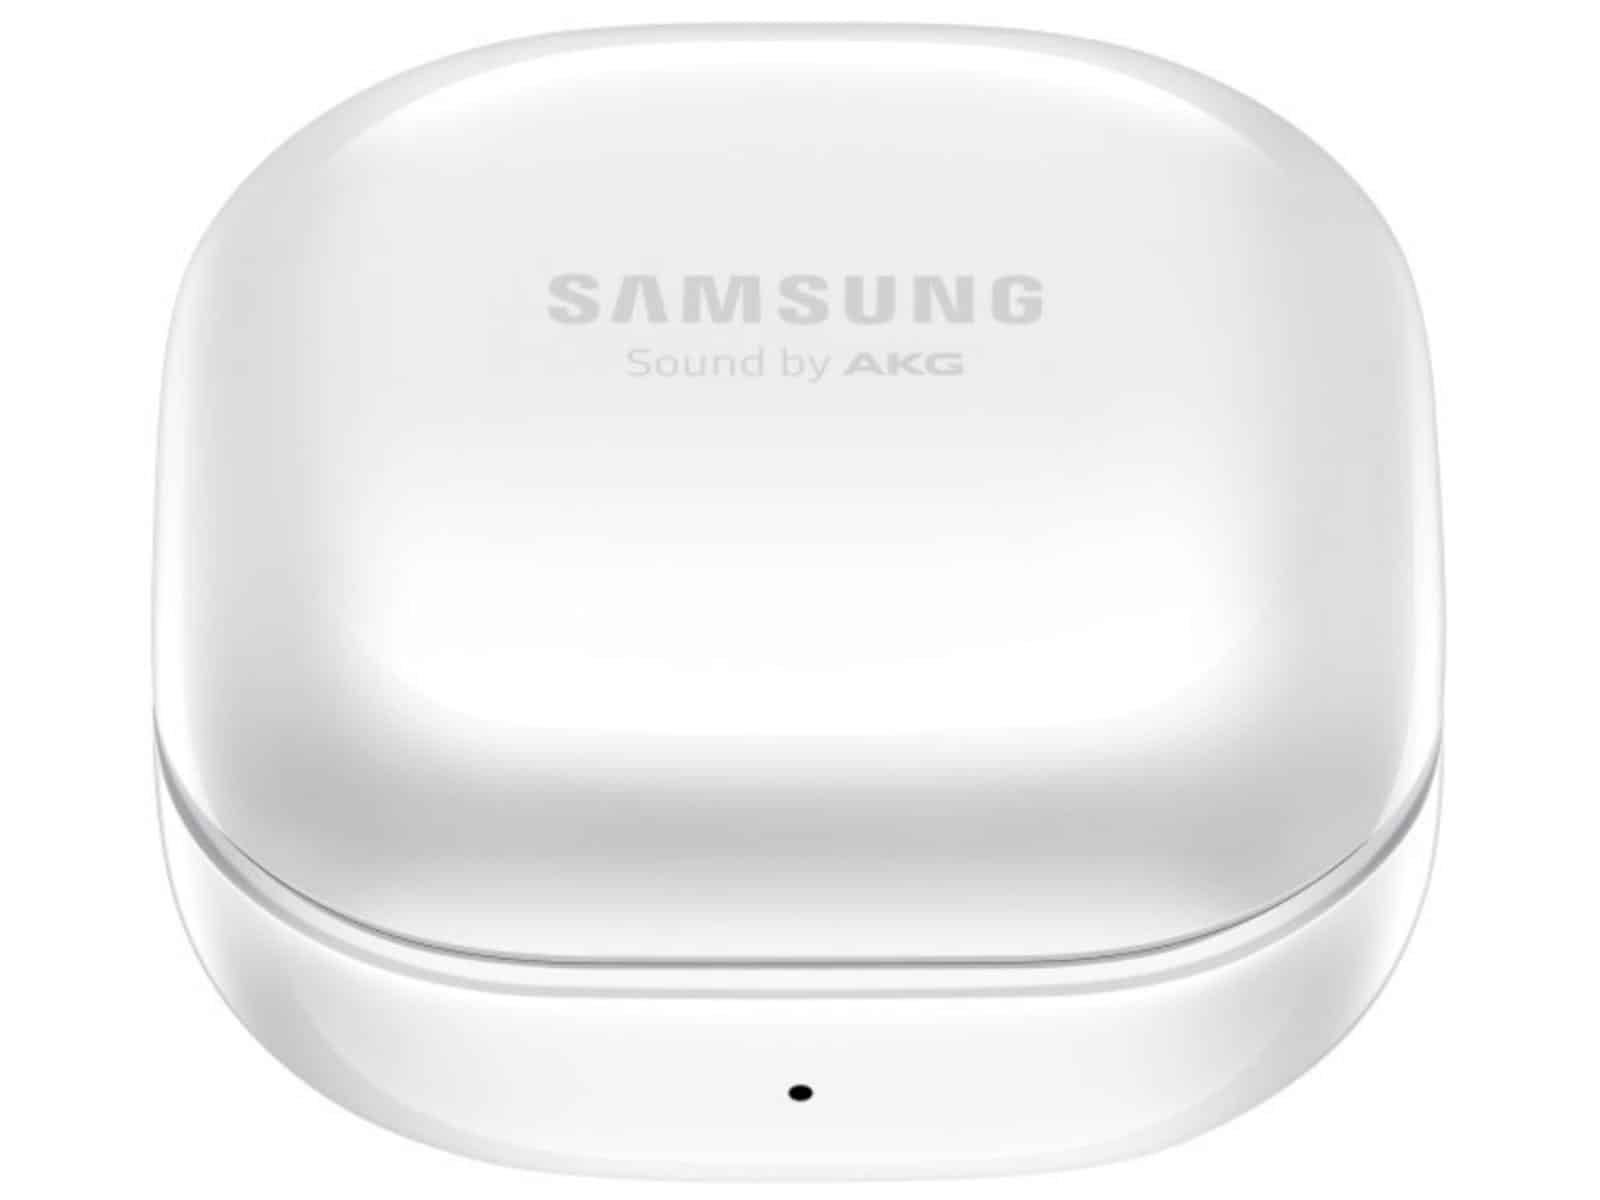 Samsung Galaxy Buds Live from WinFuture roland quandt 01